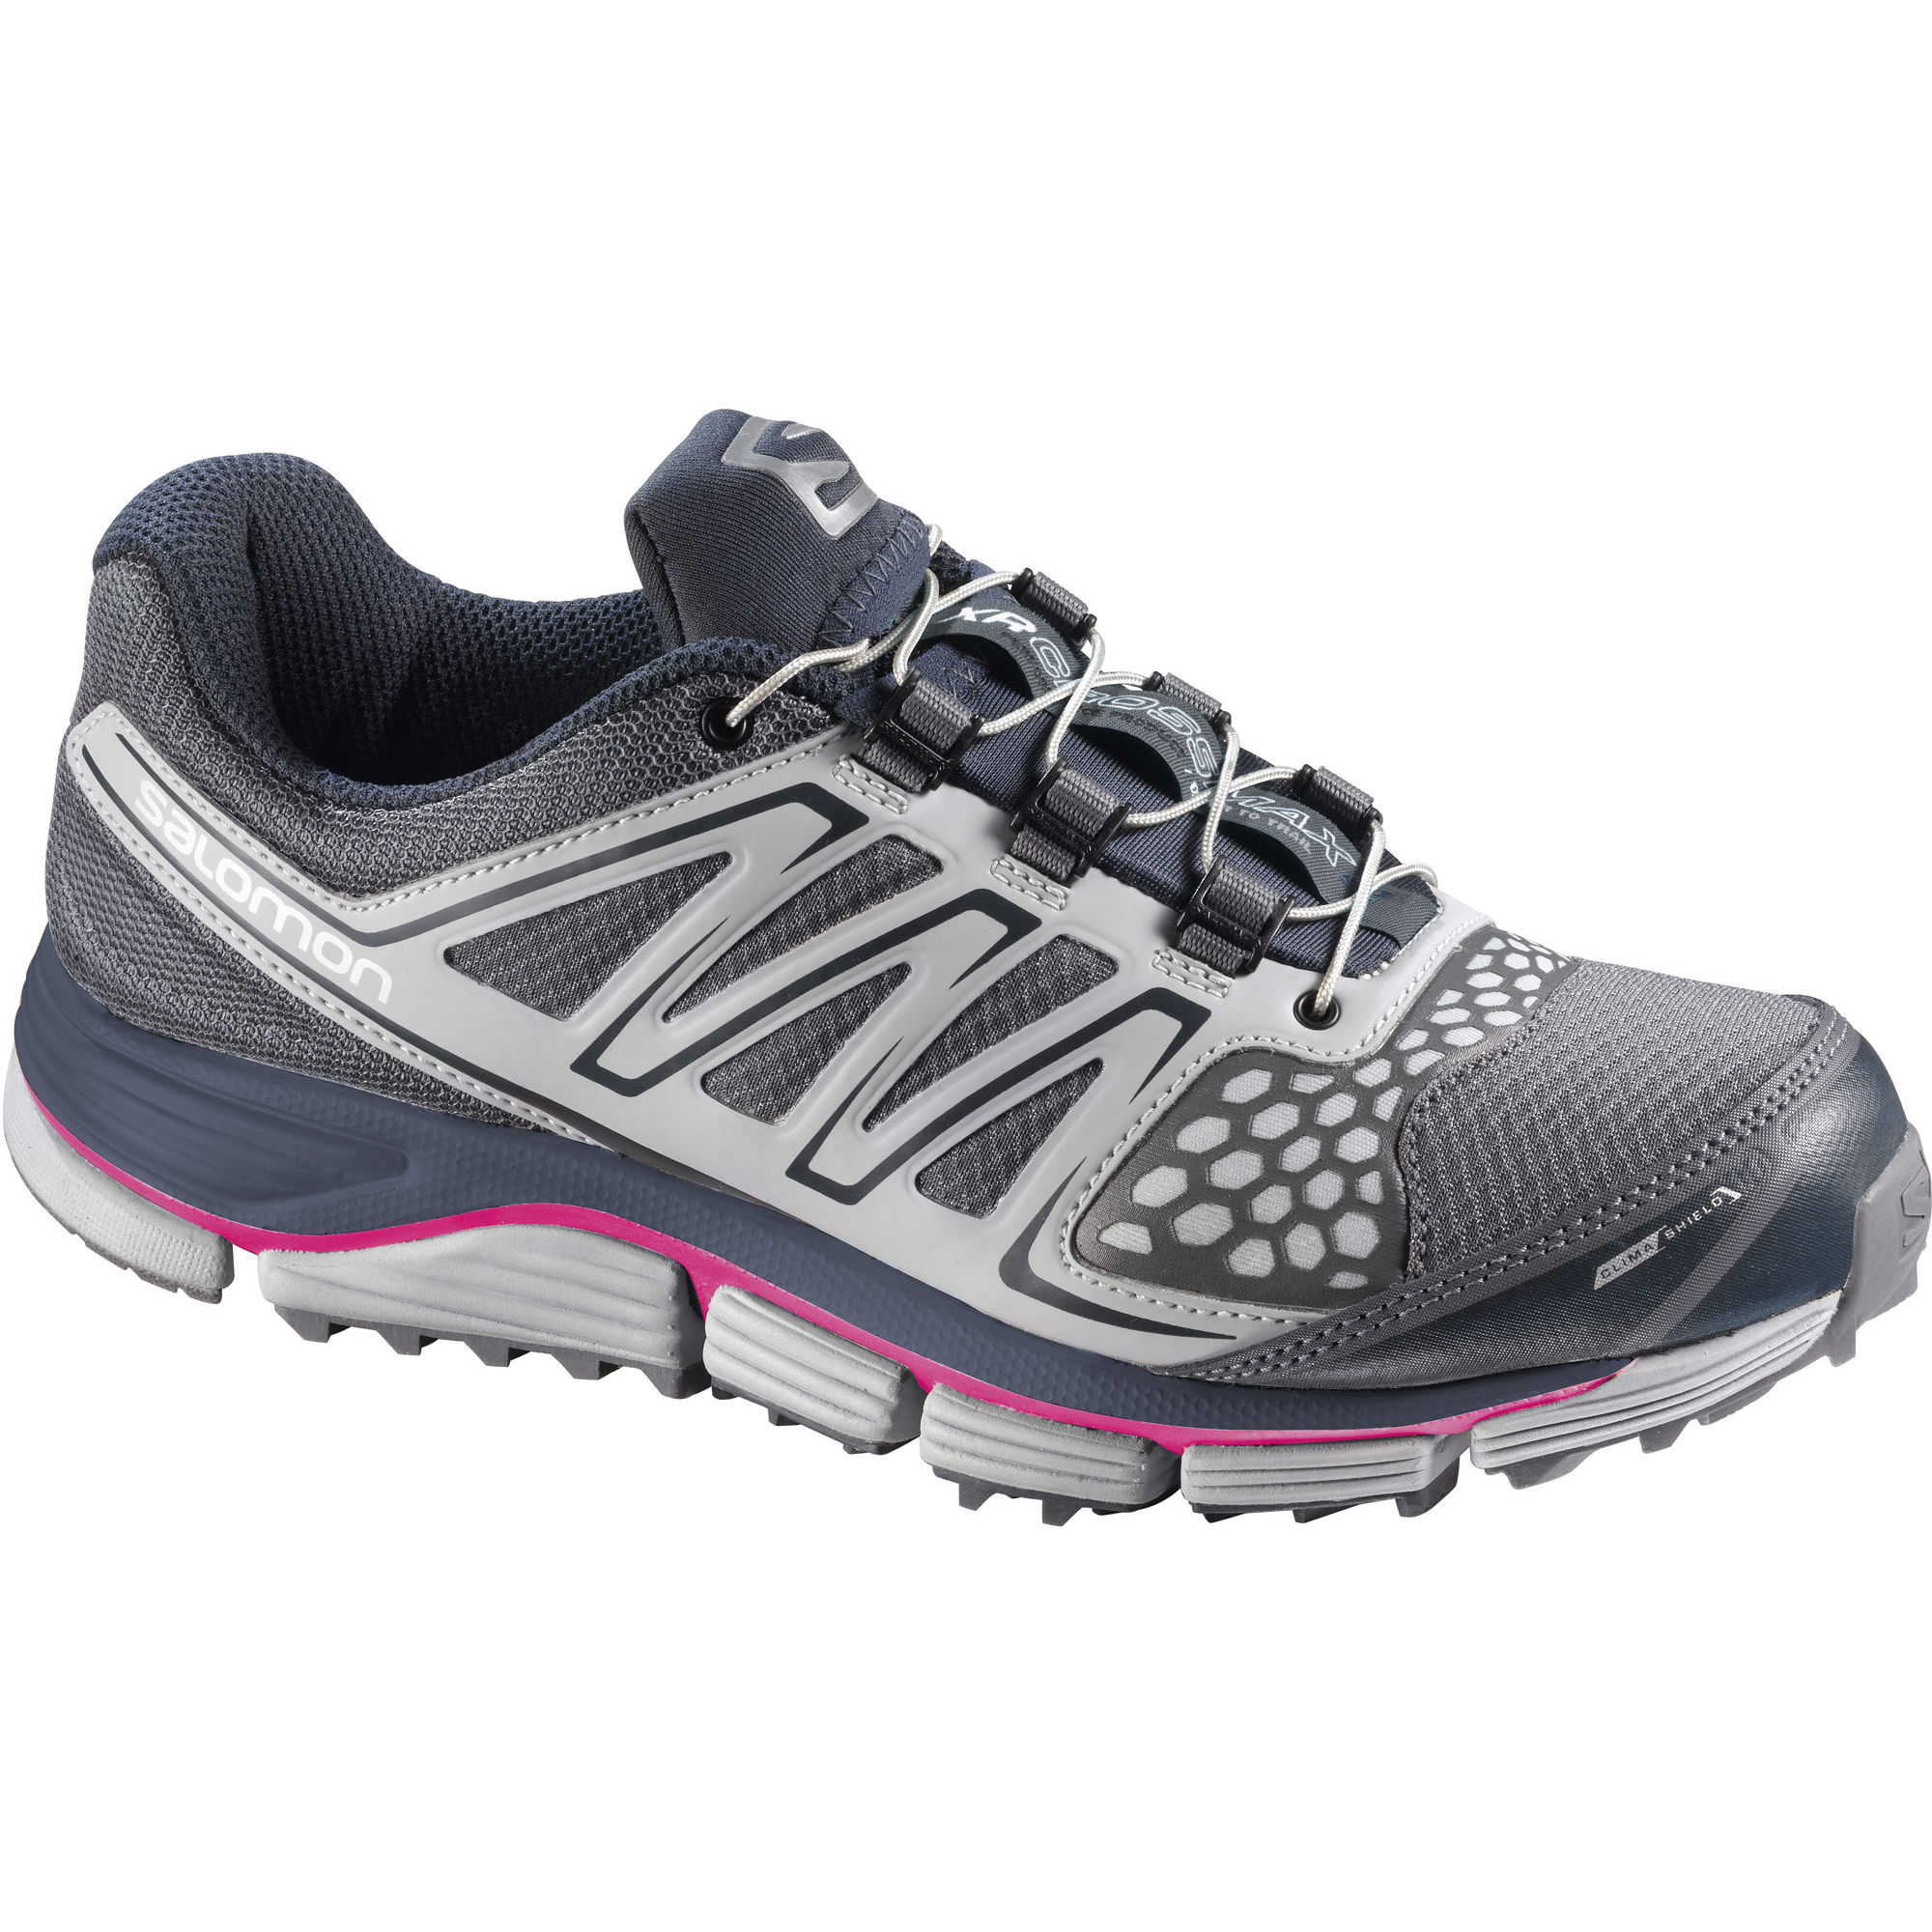 Salomon_Ladies-XR-crossmax-2-CS-grey-pink_2013